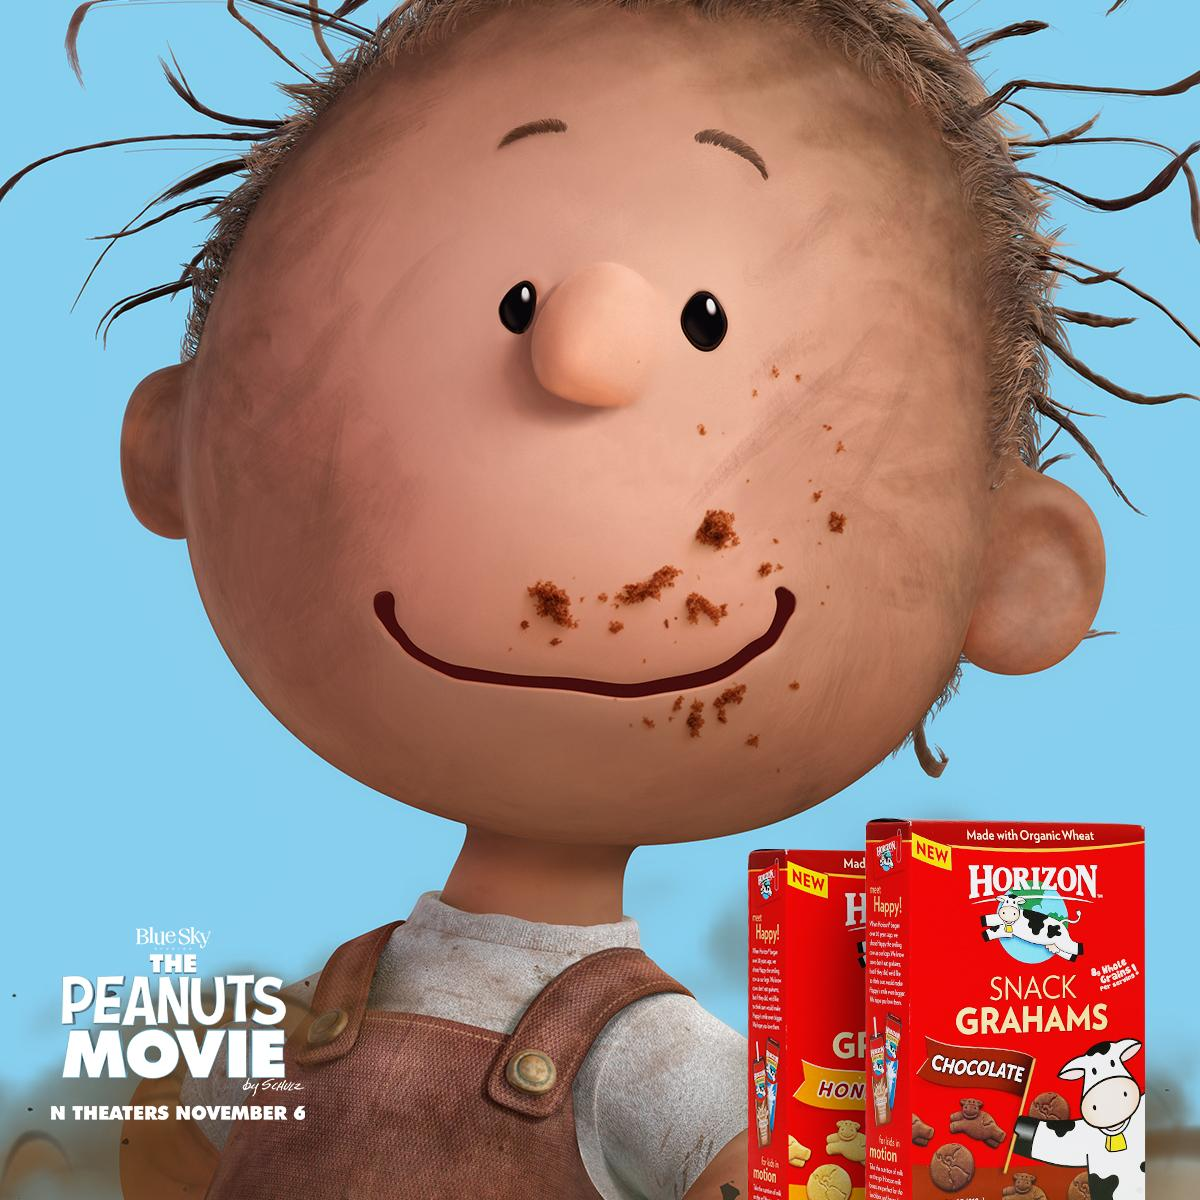 When you have kids, crumbs come with the territory. Share your kid's Horizon #crumbface on Instagram! #HorizonSnacks http://t.co/0IEJwHuyyG